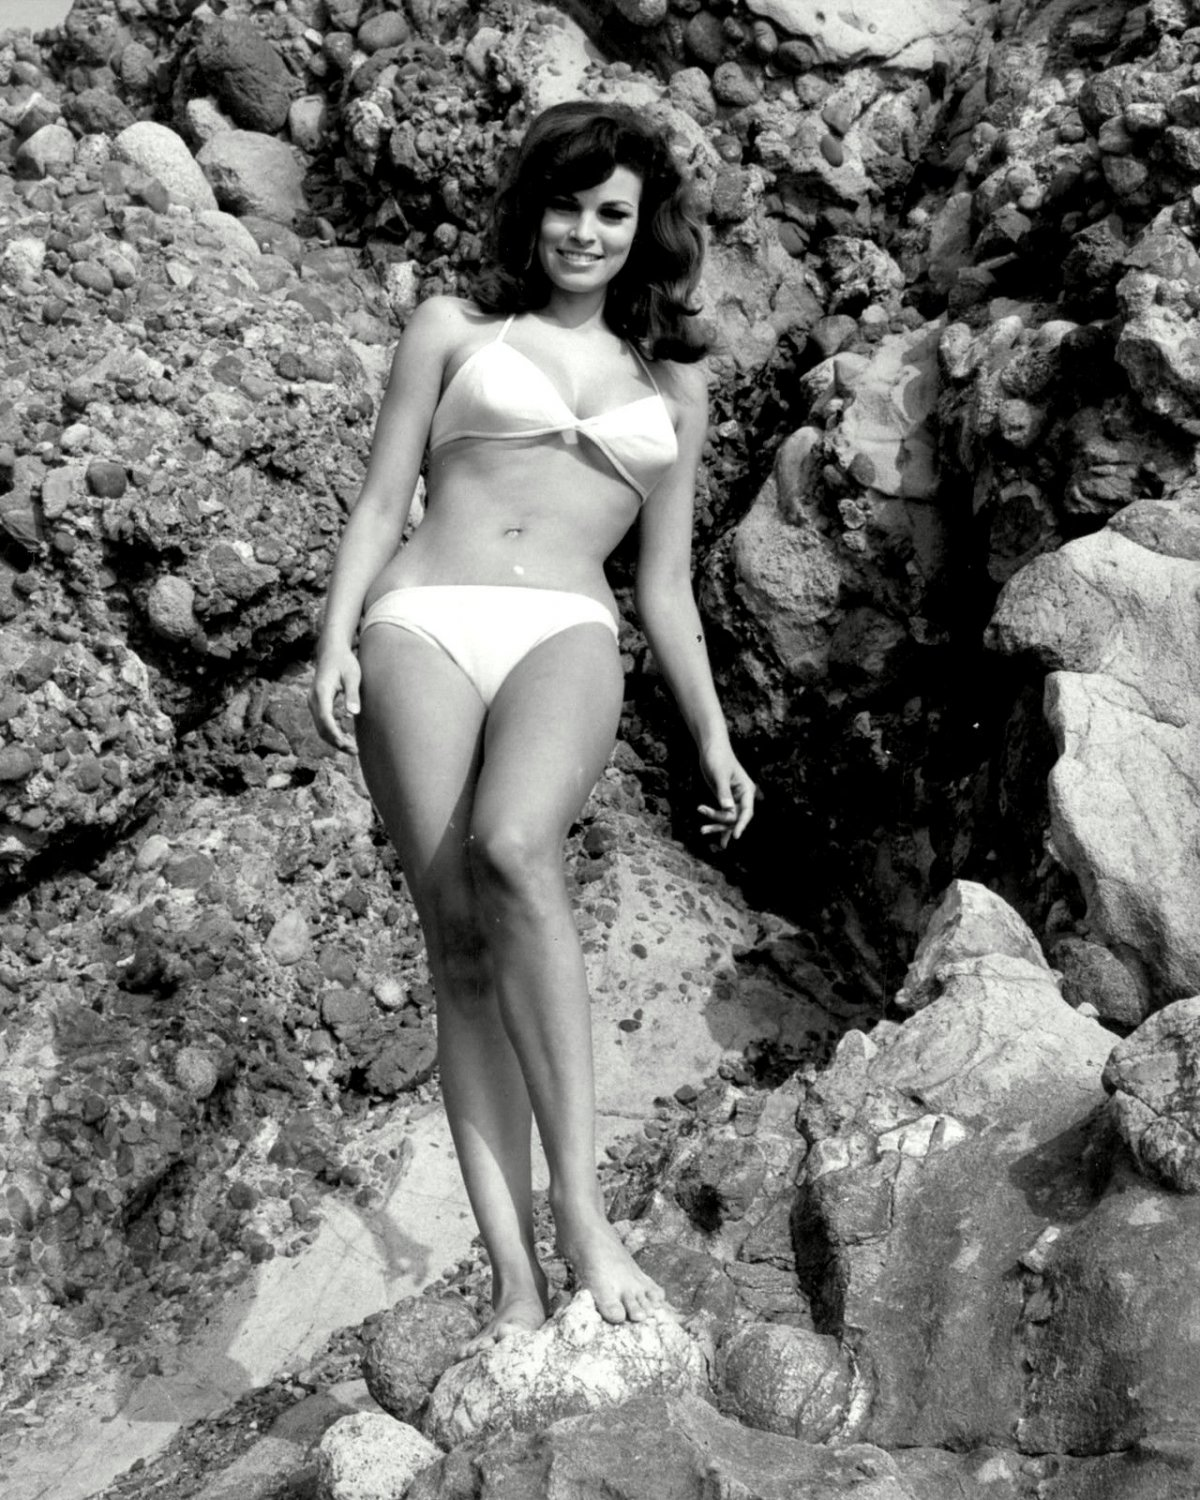 RAQUEL WELCH ACTRESS AND SEX-SYMBOL - 8X10 PUBLICITY PHOTO (SP-017)